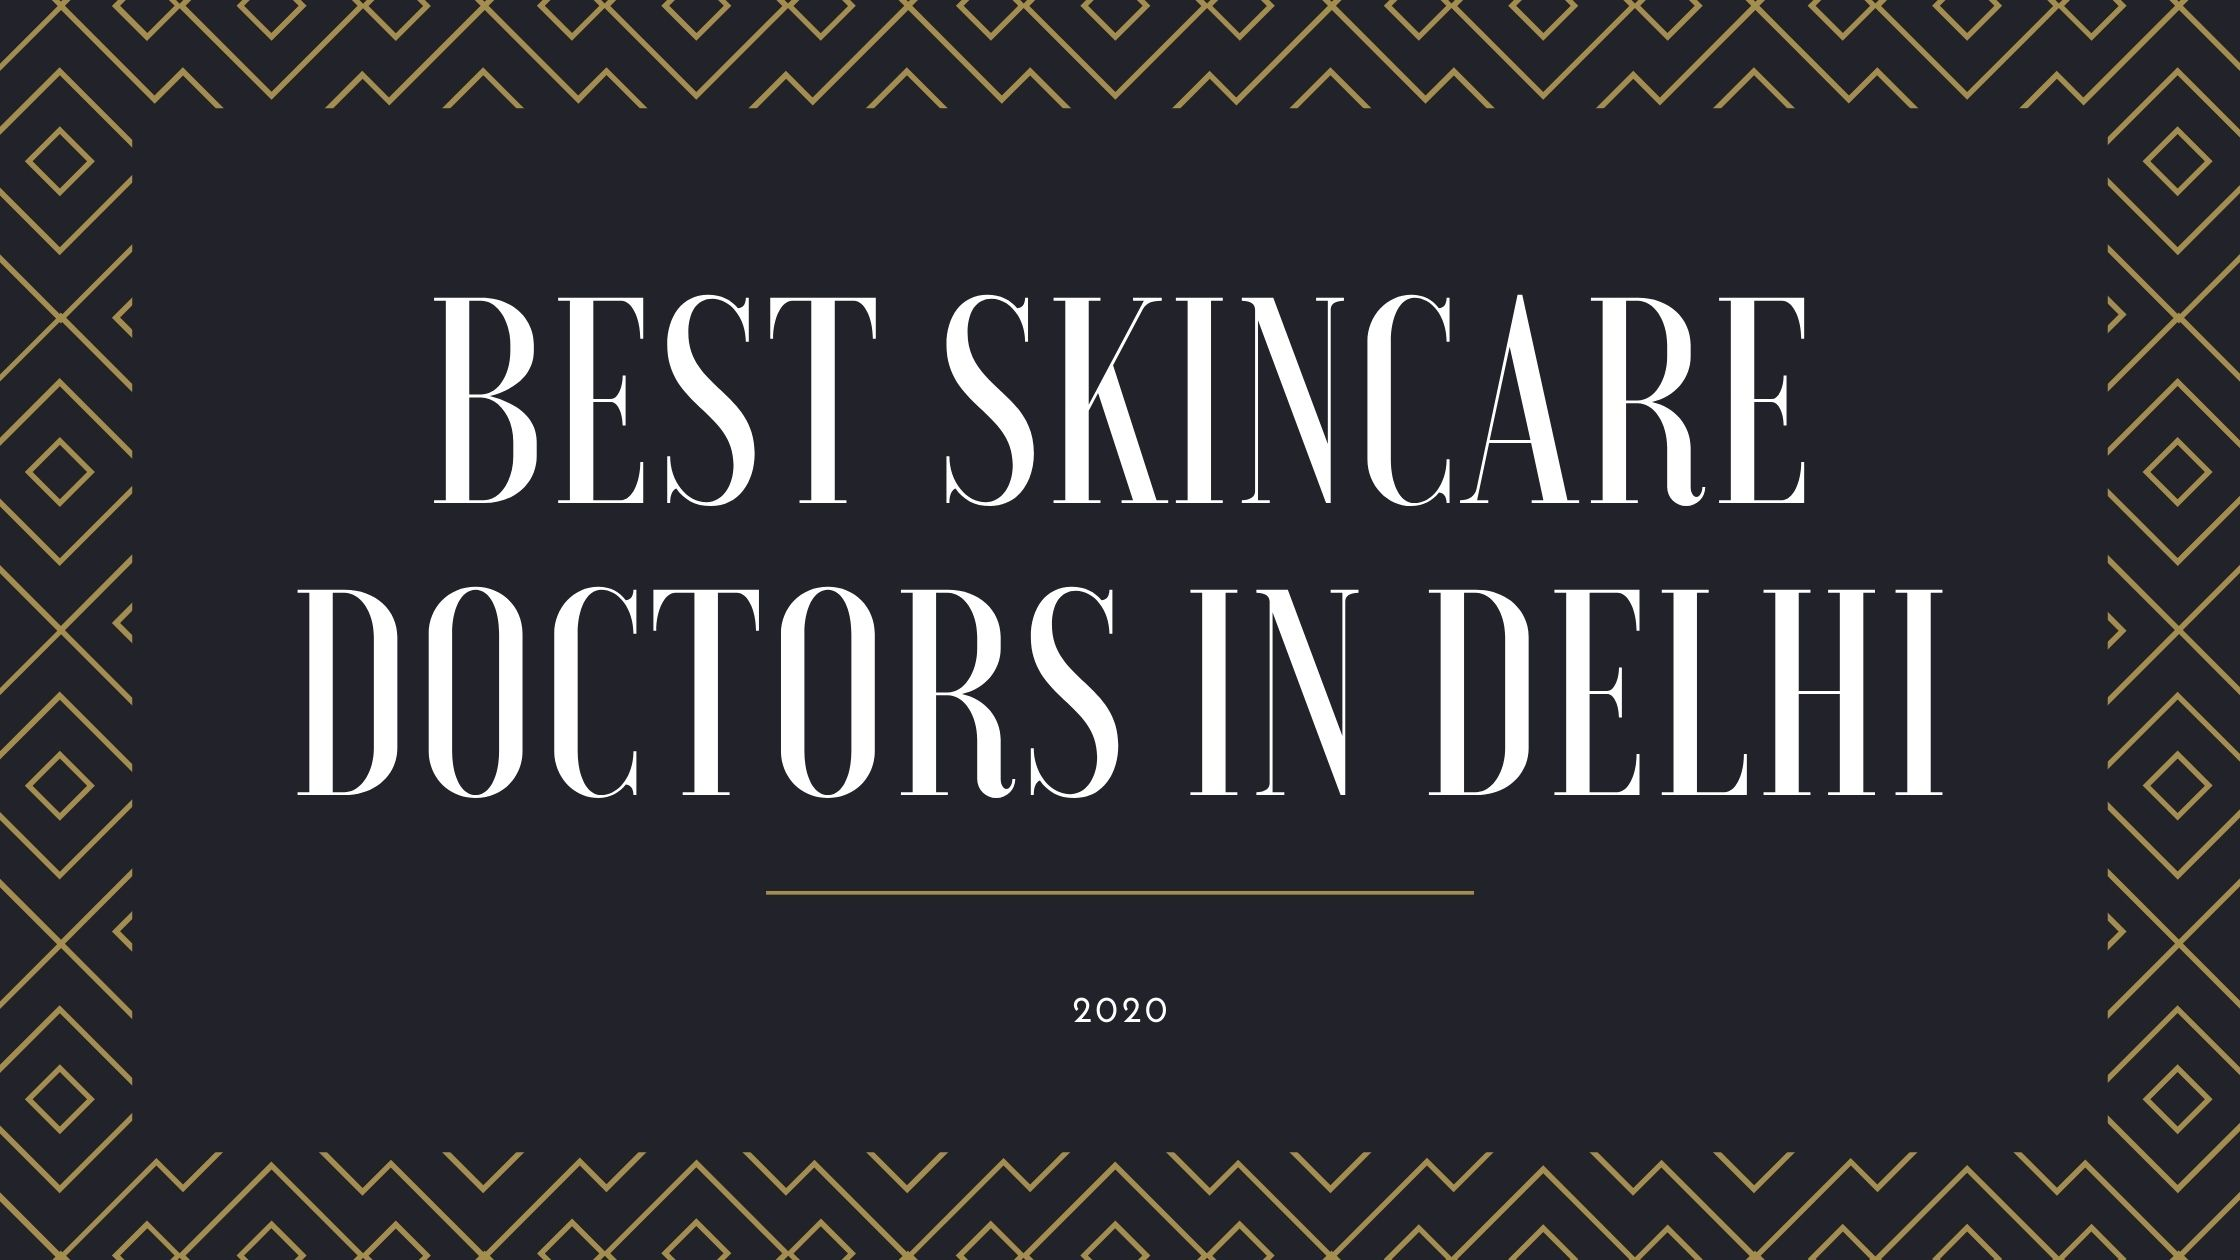 Best Skincare Doctors in Delhi